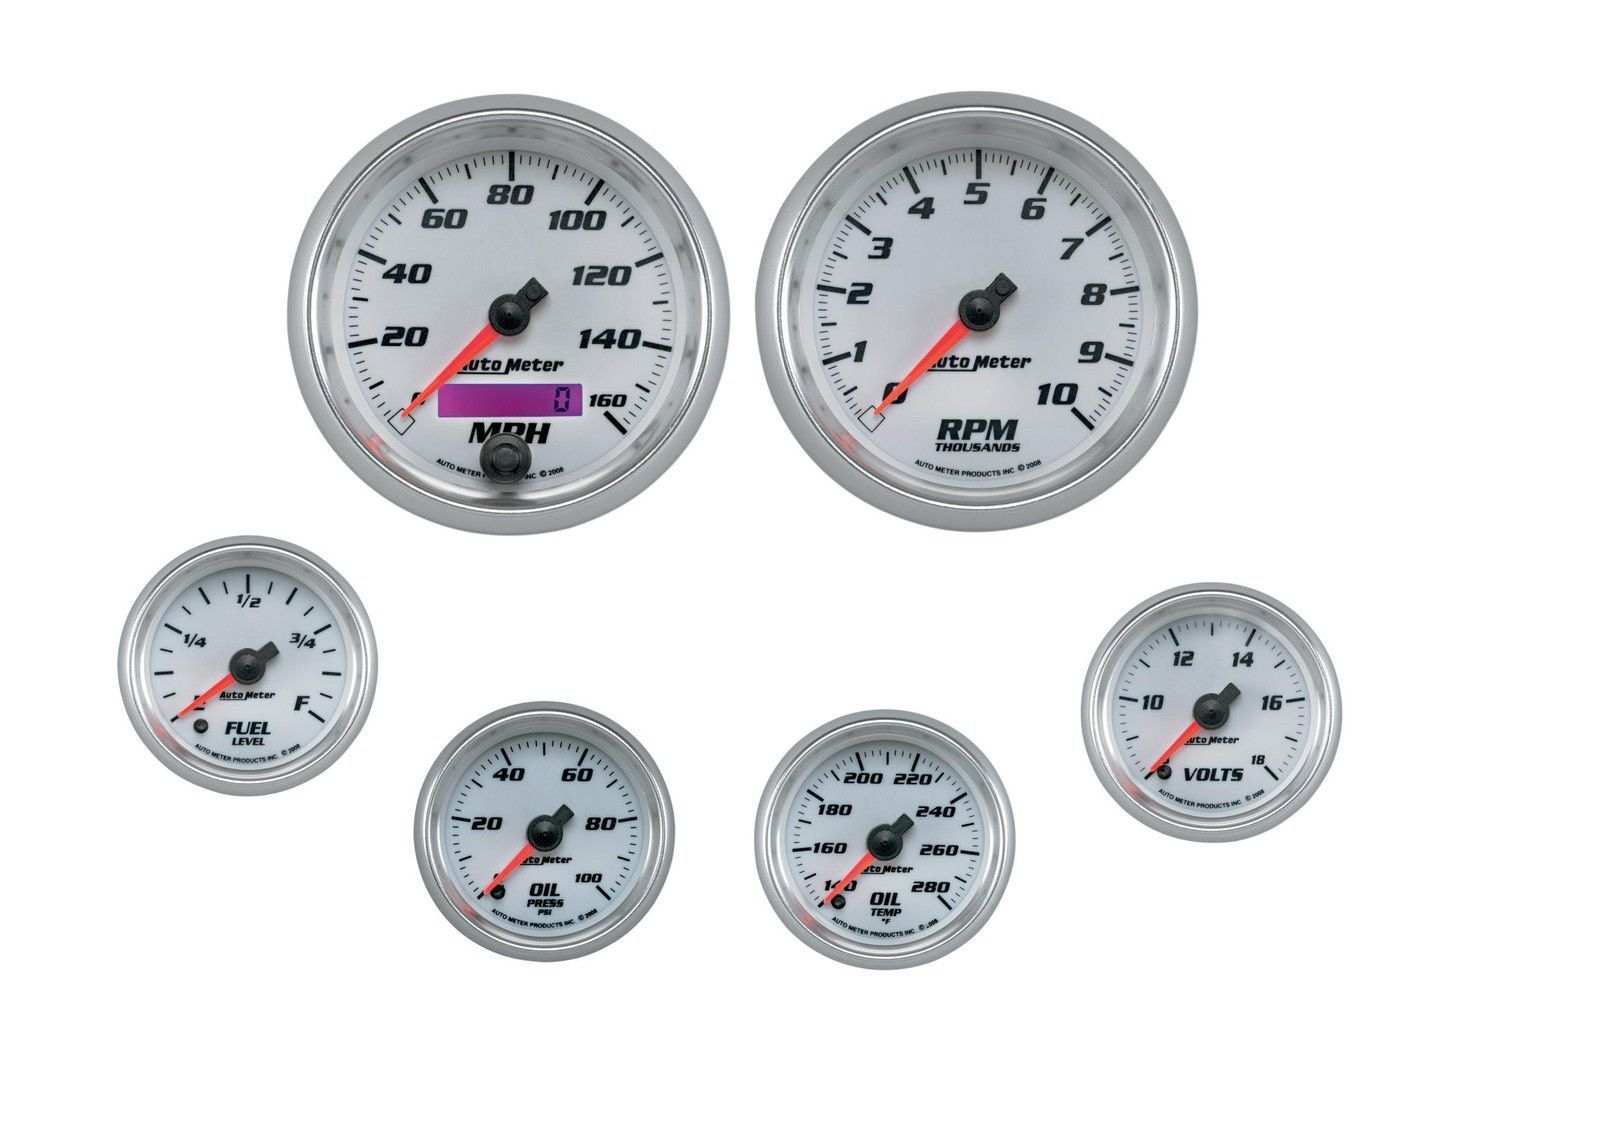 Auto Meter AutoMeter 19701 Gauge Pro-Cycle Bagger Kit 6 Pc White 3 3//8 /& 2 1//16